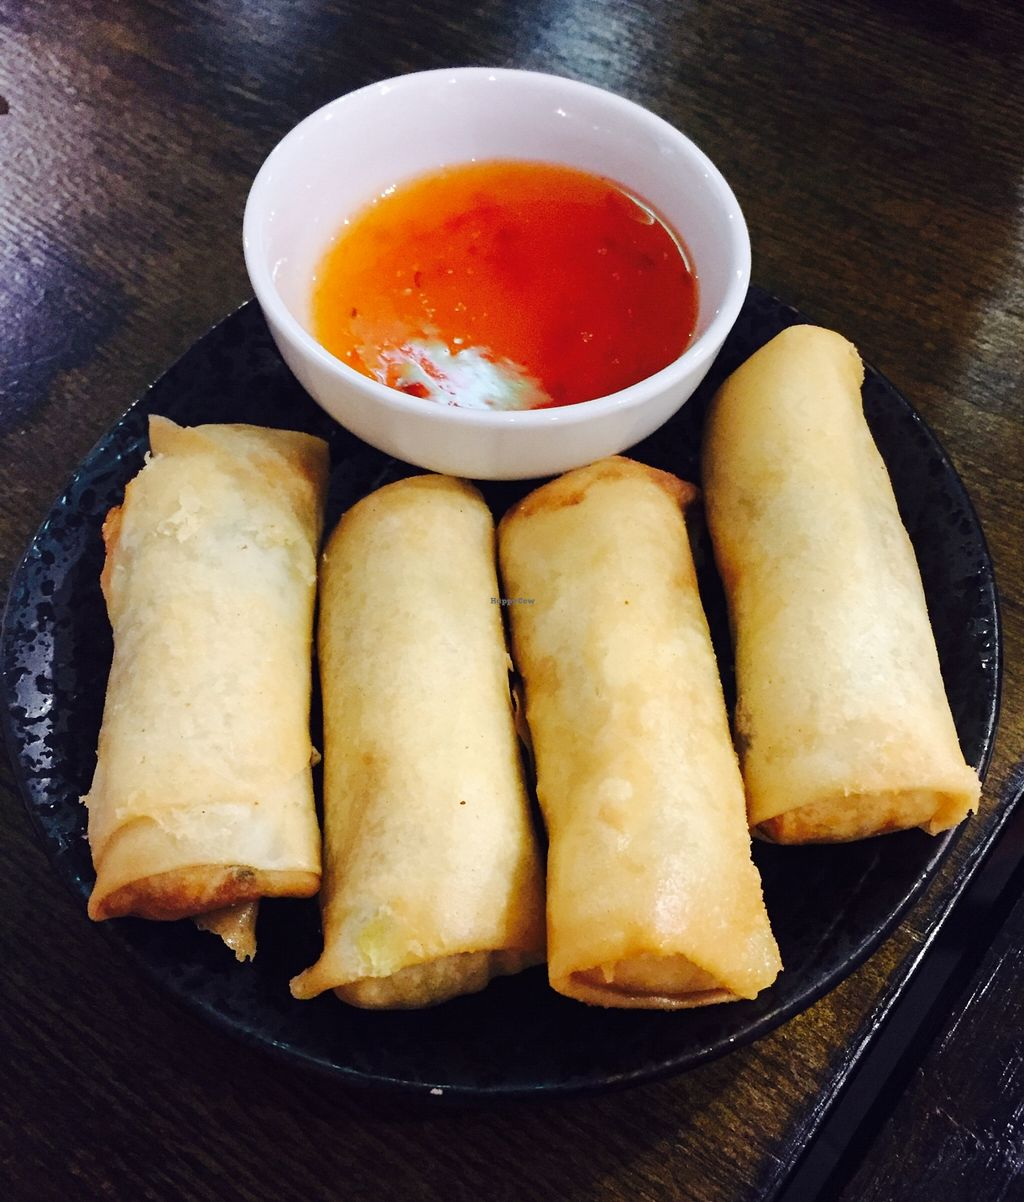 """Photo of Vegeme  by <a href=""""/members/profile/karlaess"""">karlaess</a> <br/>Spring rolls <br/> May 14, 2016  - <a href='/contact/abuse/image/64155/148926'>Report</a>"""